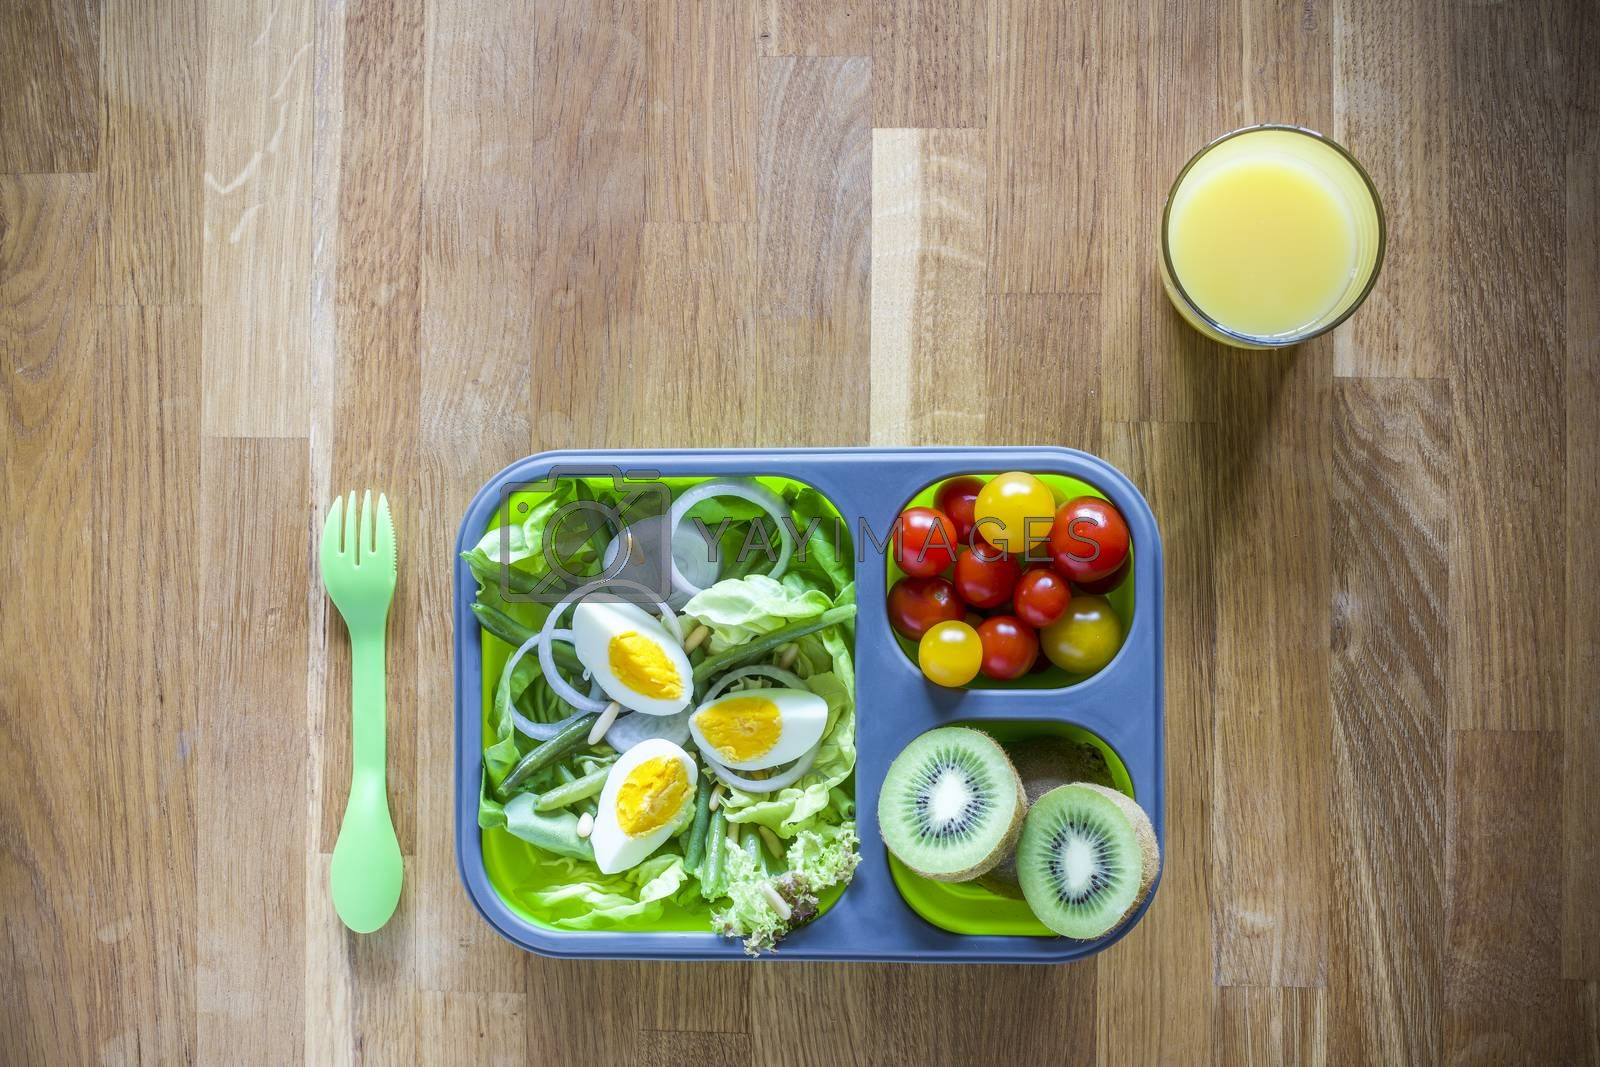 Collapsible silicon lunch box with food (salads, eggs, kiwi) on wooden table and orange juice